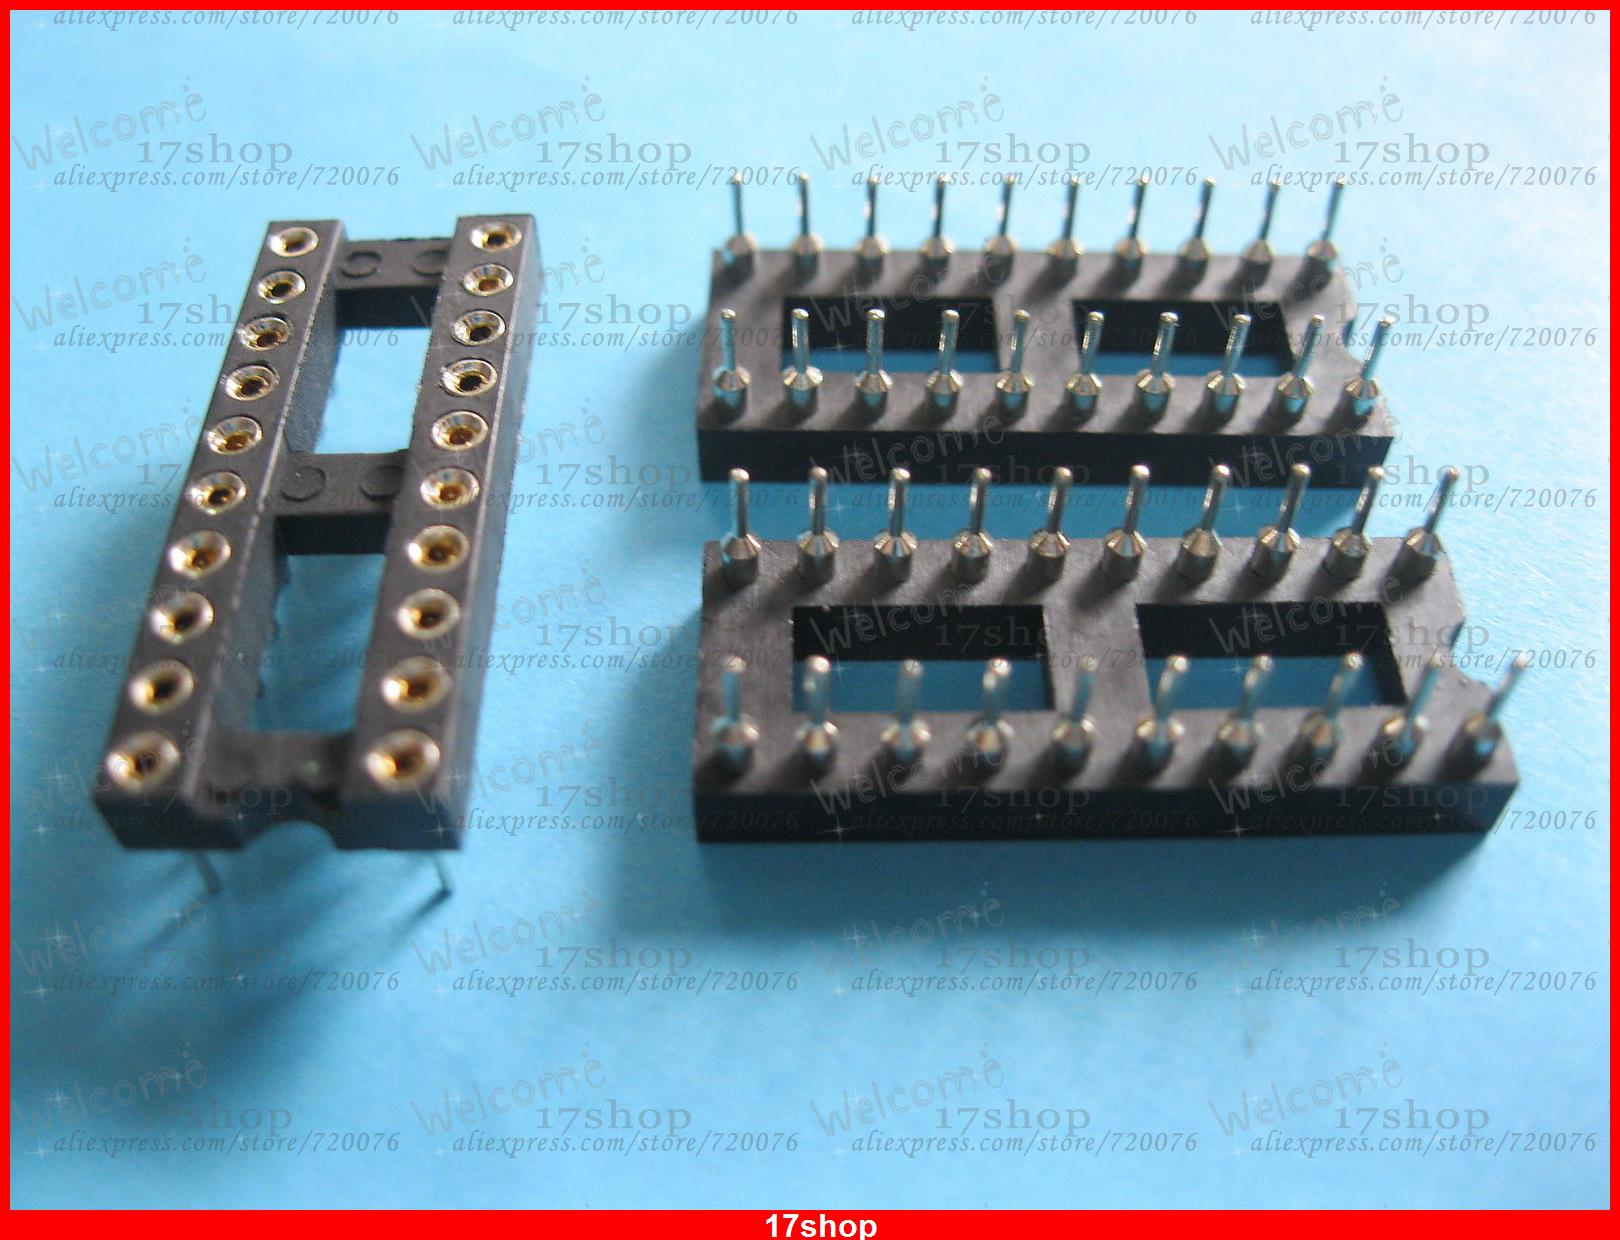 240 x IC Socket Adapter Round 20 Pin Headers & (IC )Sockets Pitch 2.54mm 7.62mm